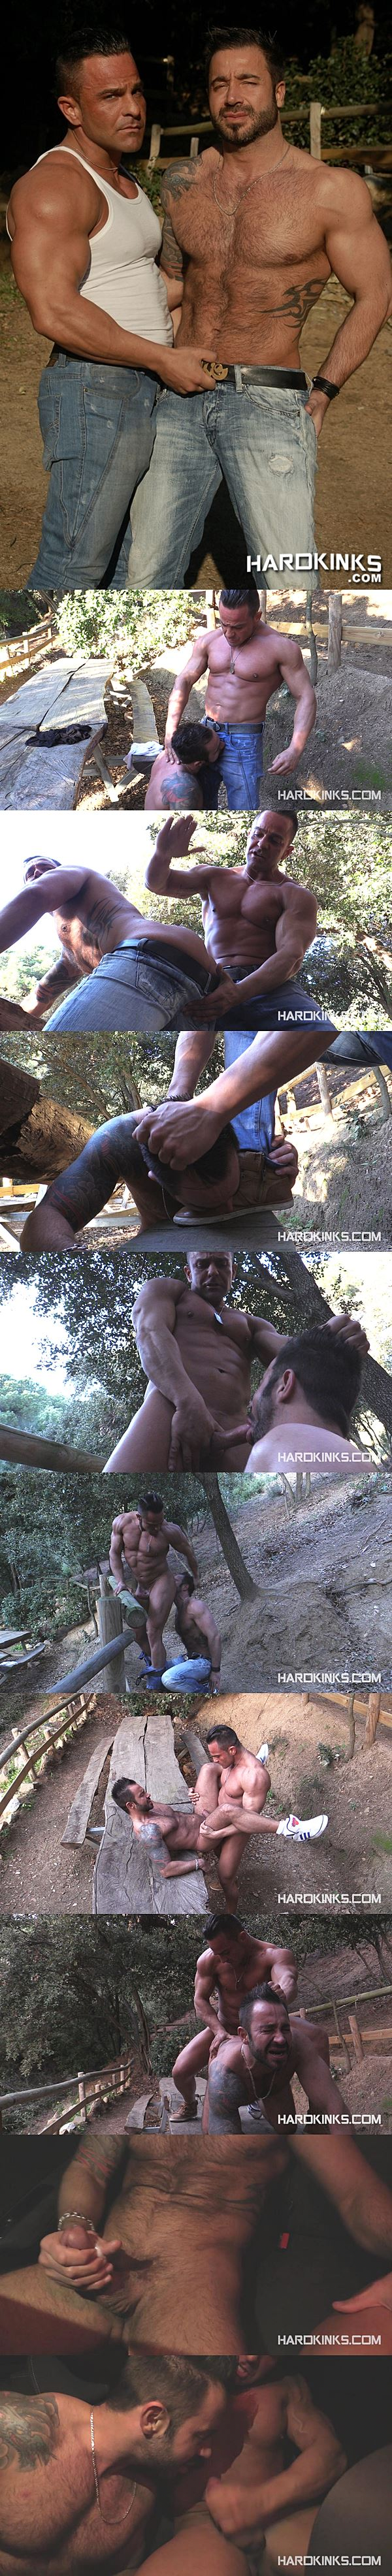 Hot straight muscle hunk Alex Brando fucks rugged handsome Martin Mazza at Hardkinks 02